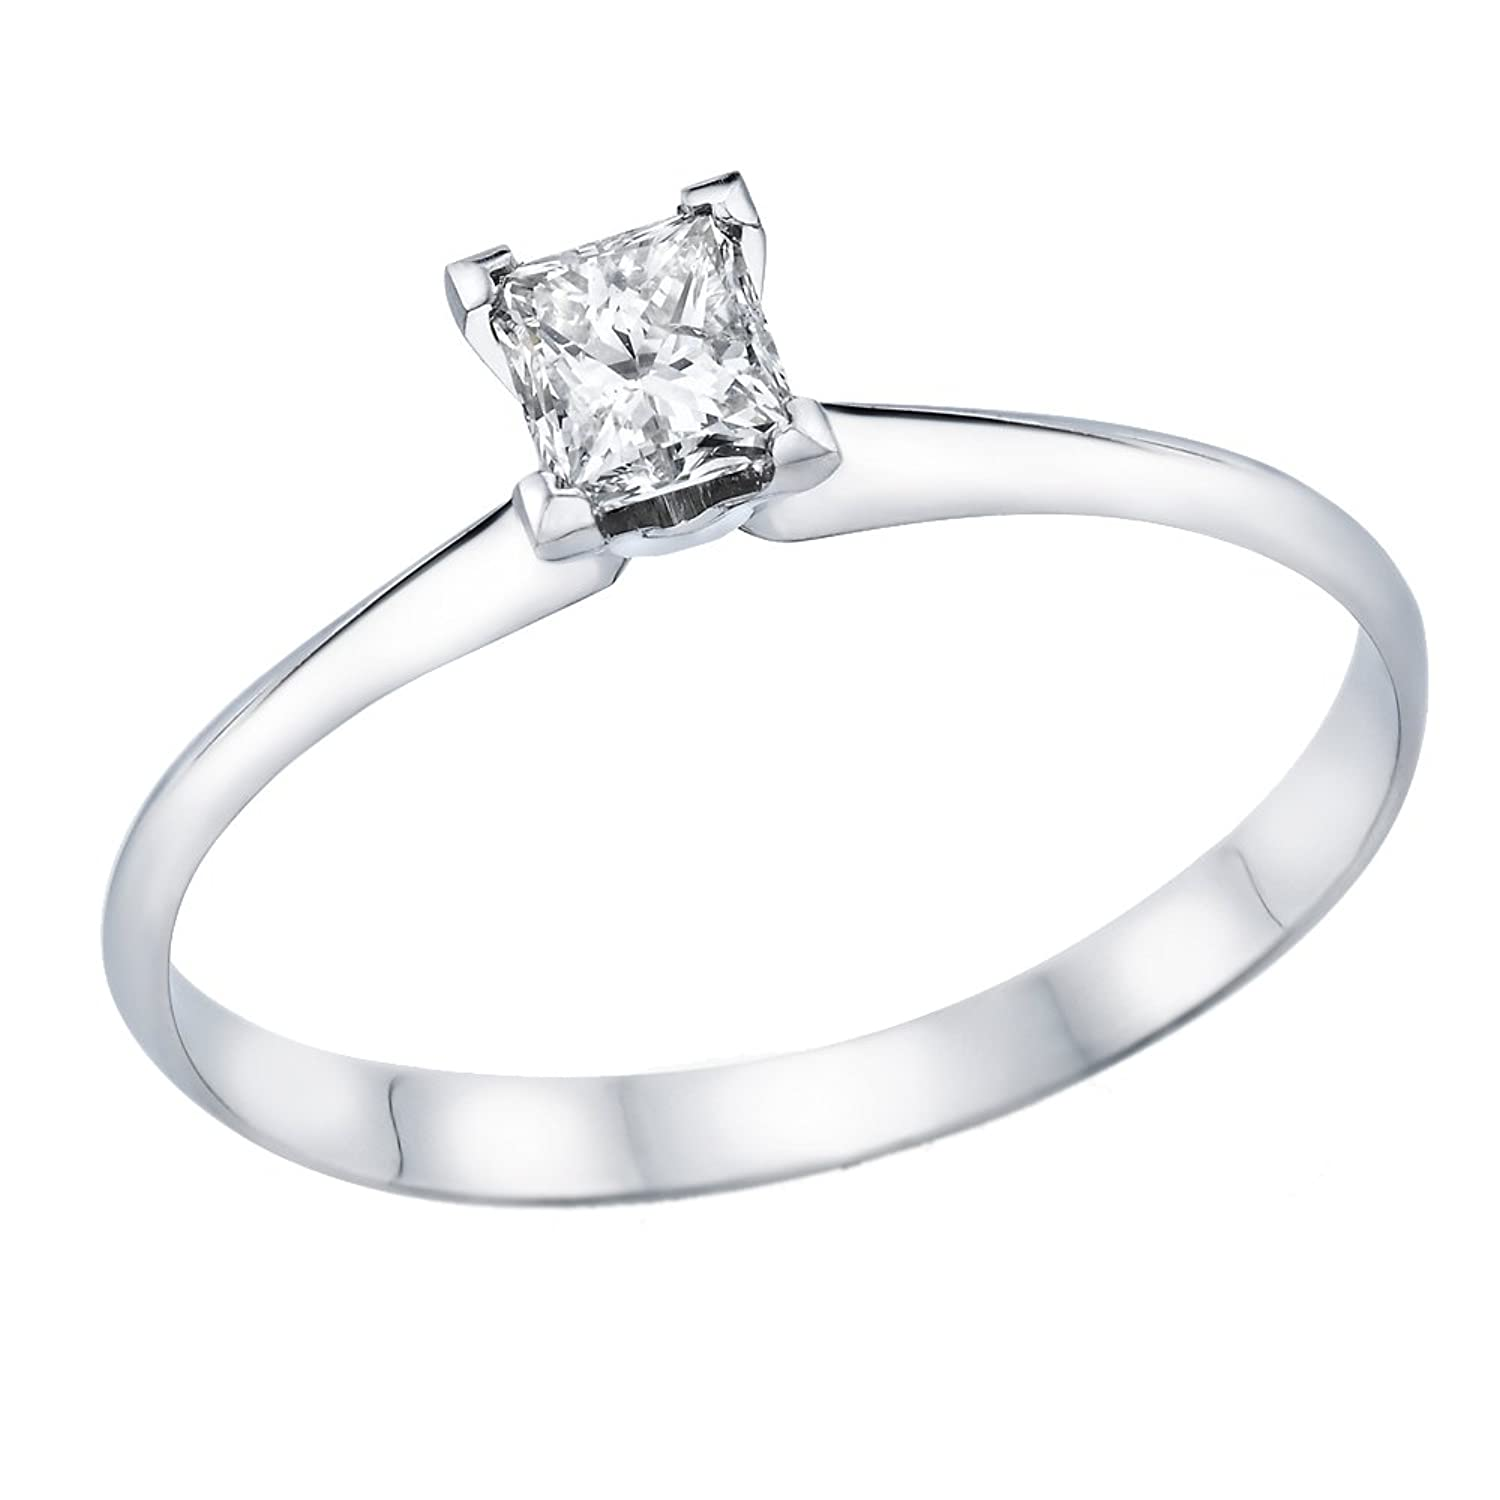 1/2 -1/5 ct Certified Diamond Engagement Ring in 14K White Gold (1/3 – 1/5 ct, L-M Color, I1-I2 Clarity)